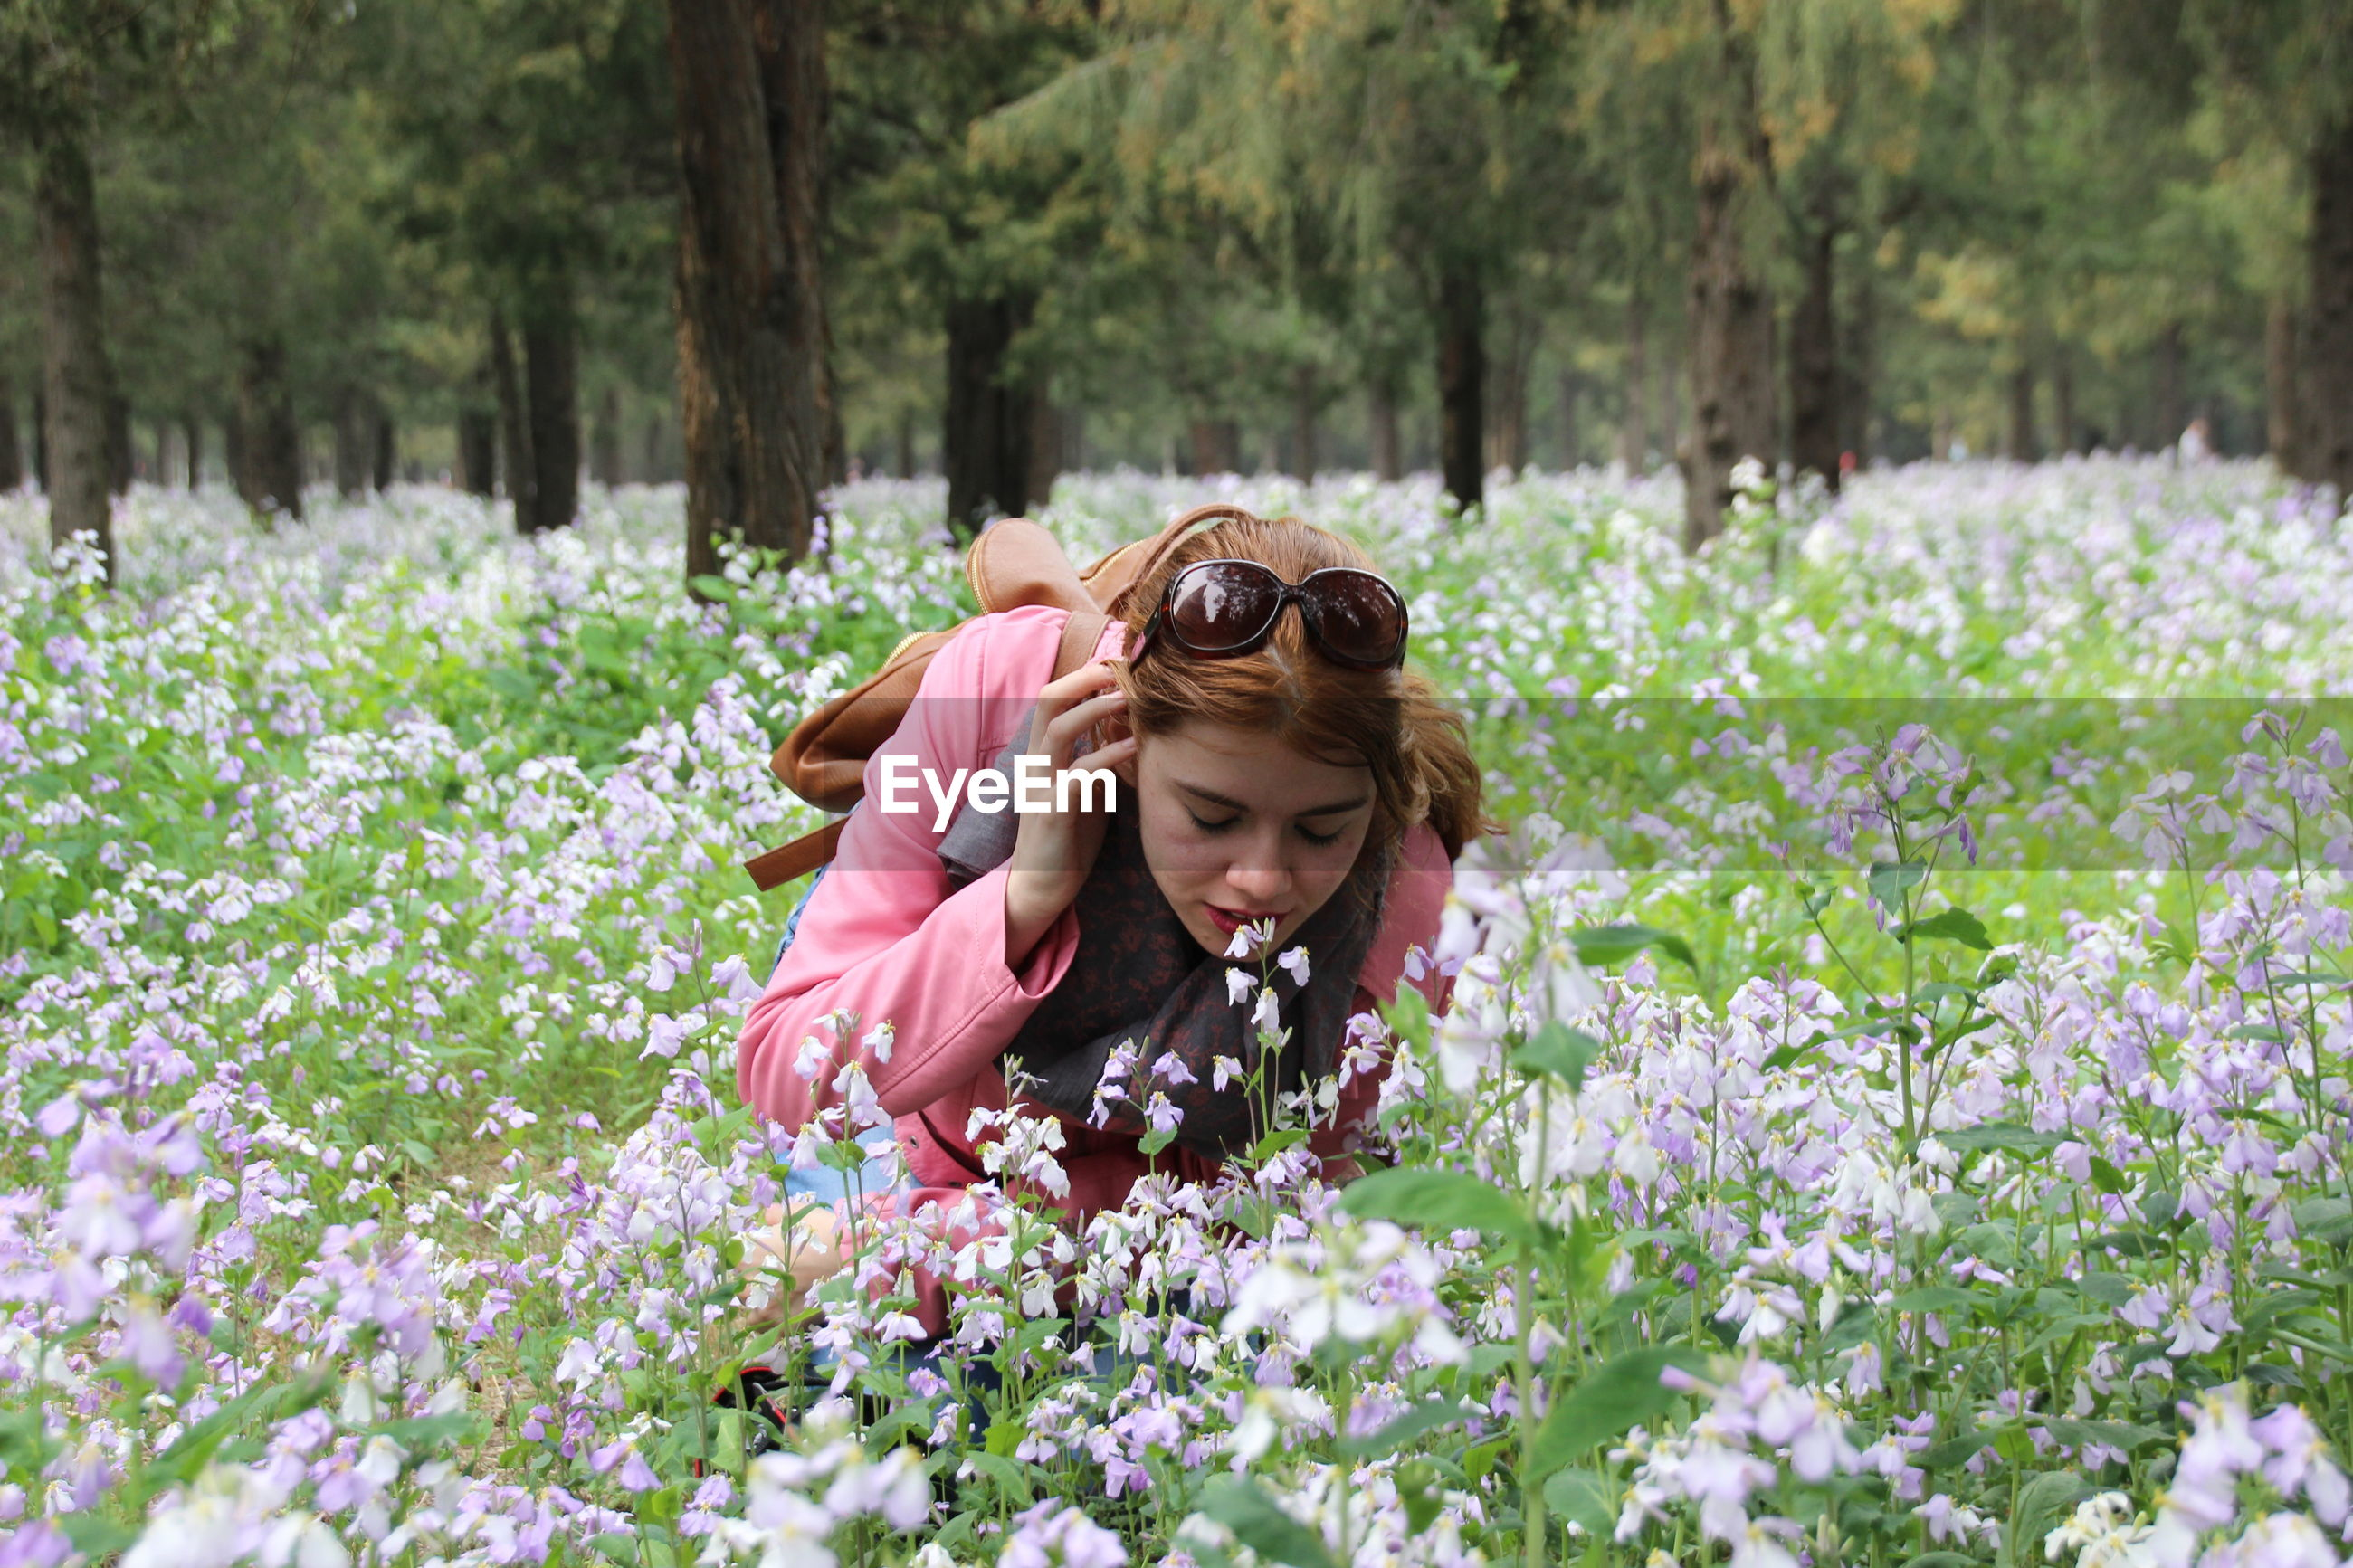 Beautiful woman smelling flowers on land